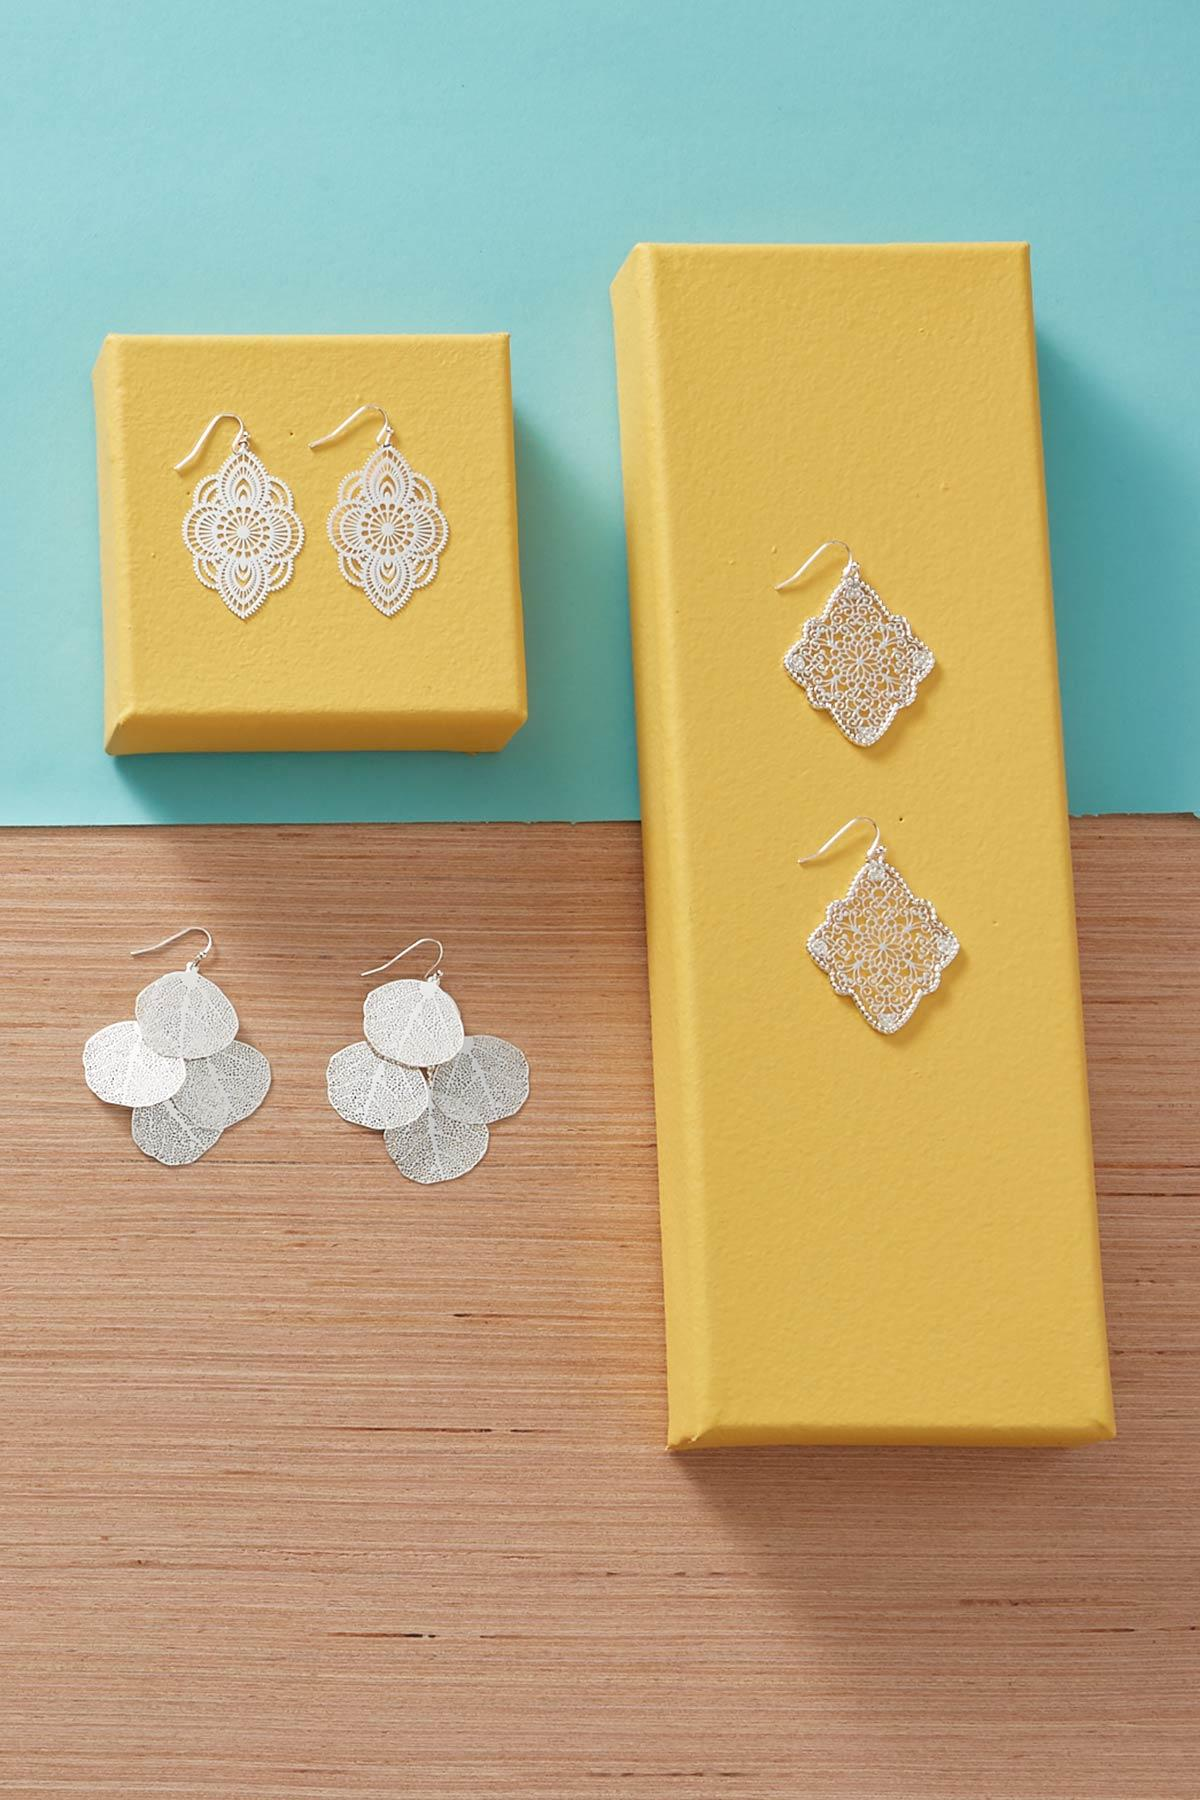 Tiered Filigree Leaf Earrings